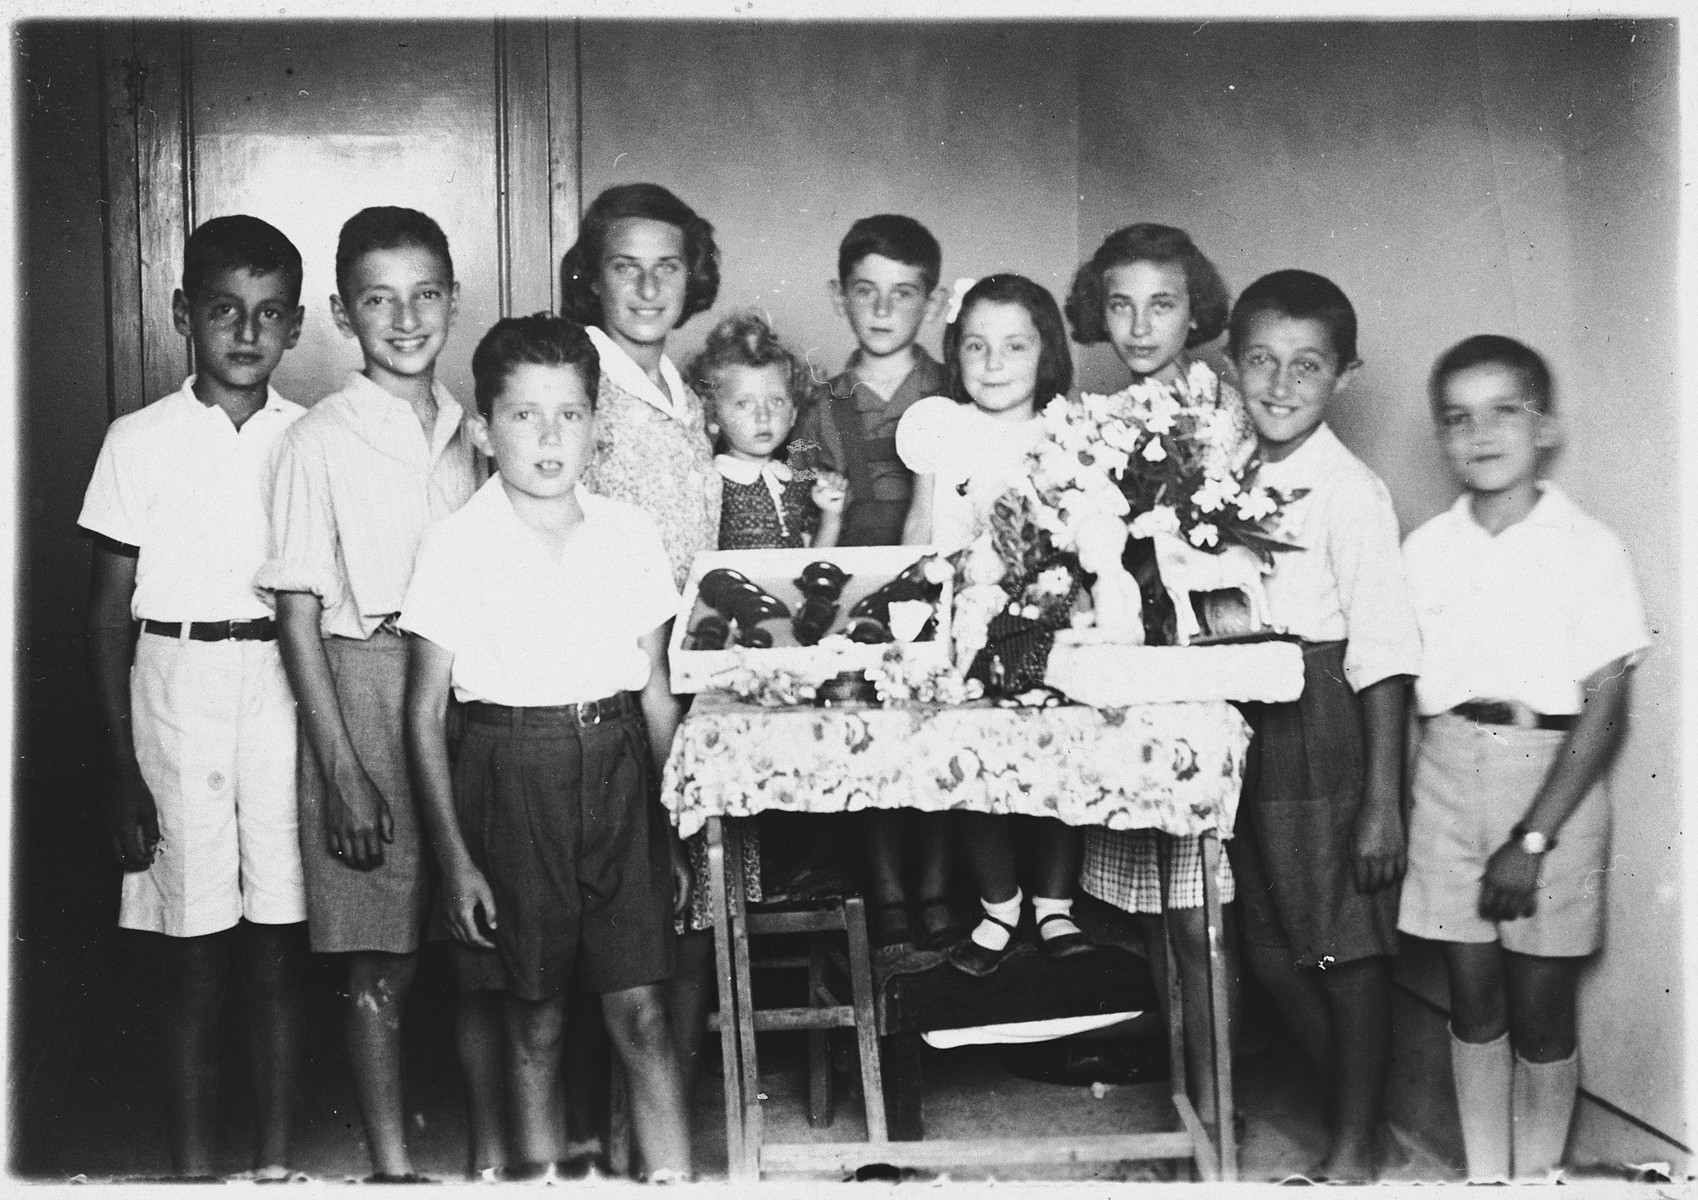 Group portrait of Jewish refugee children at a birthday party in Kavaja, Albania.  Pictured from left to right are: unknown, Marki Azriel, Michael Levy, Stella Gershon, Ela Mandil, Gavra Mandil, Irena Mandil, unknown, Michael Konforti, Jasa Altarac.  The party was in celebration of Irena Mandil's birthday.